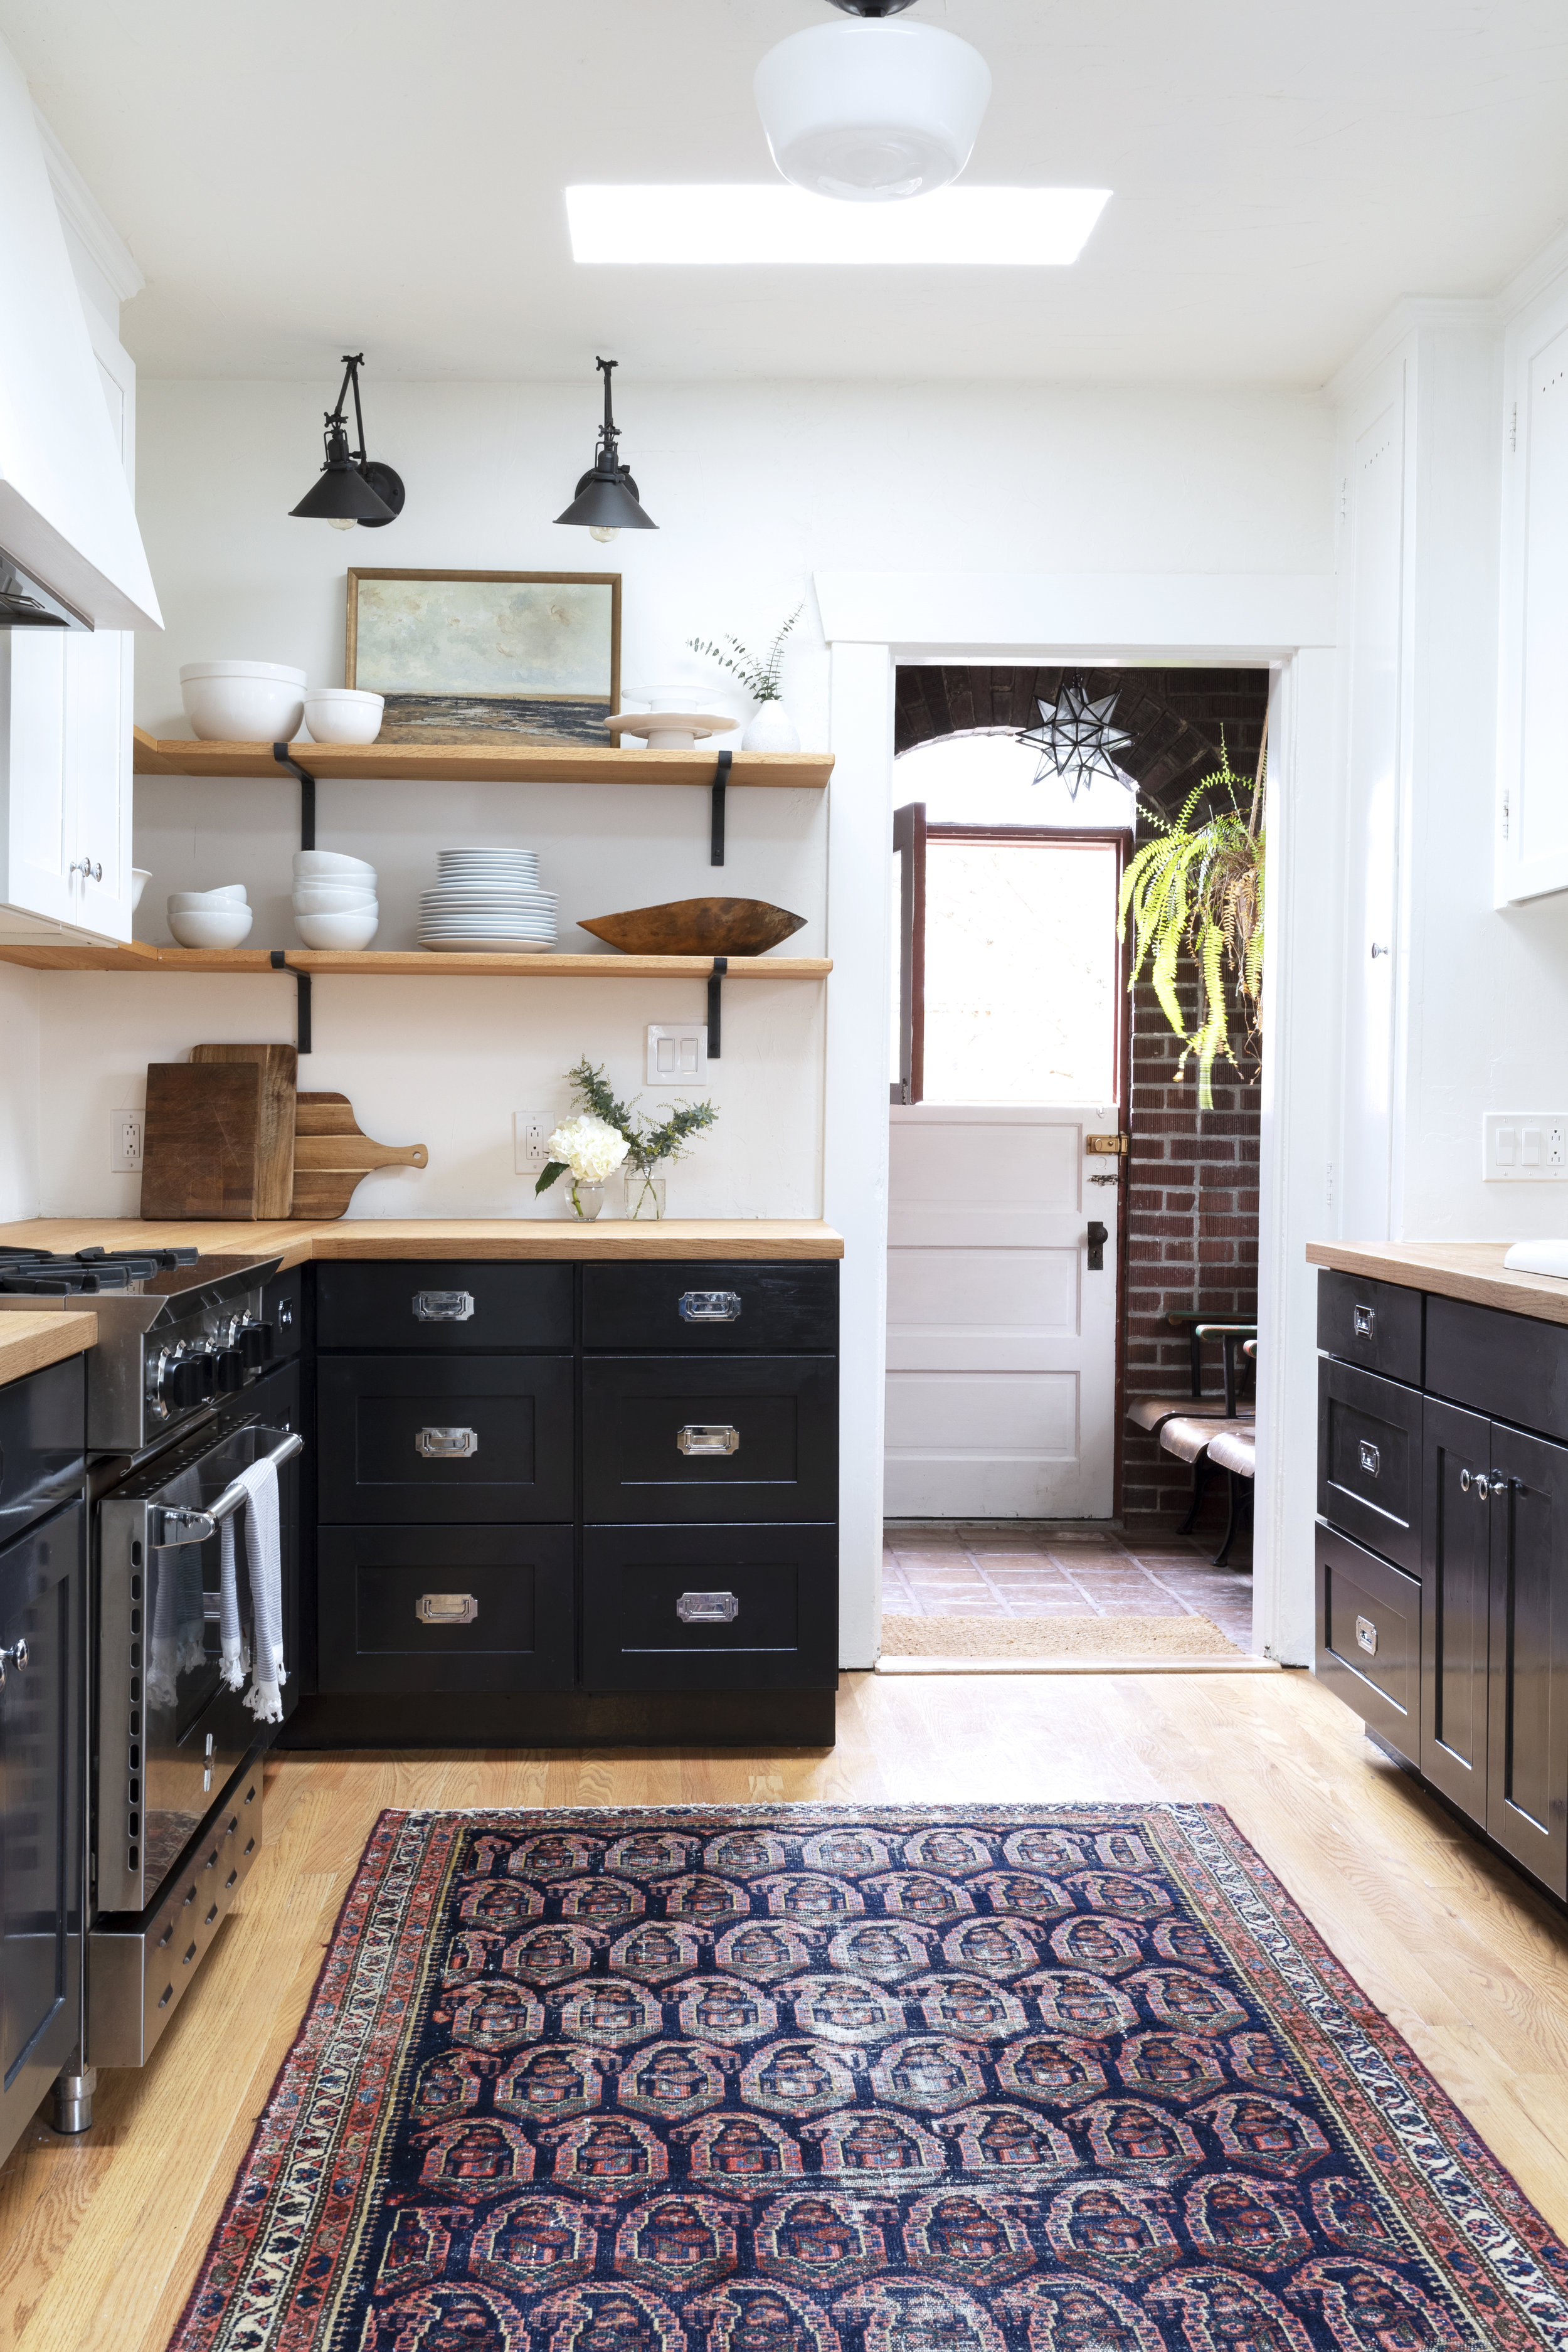 The Grit and Polish - Dexter Black, White, and Wood Kitchen.jpg